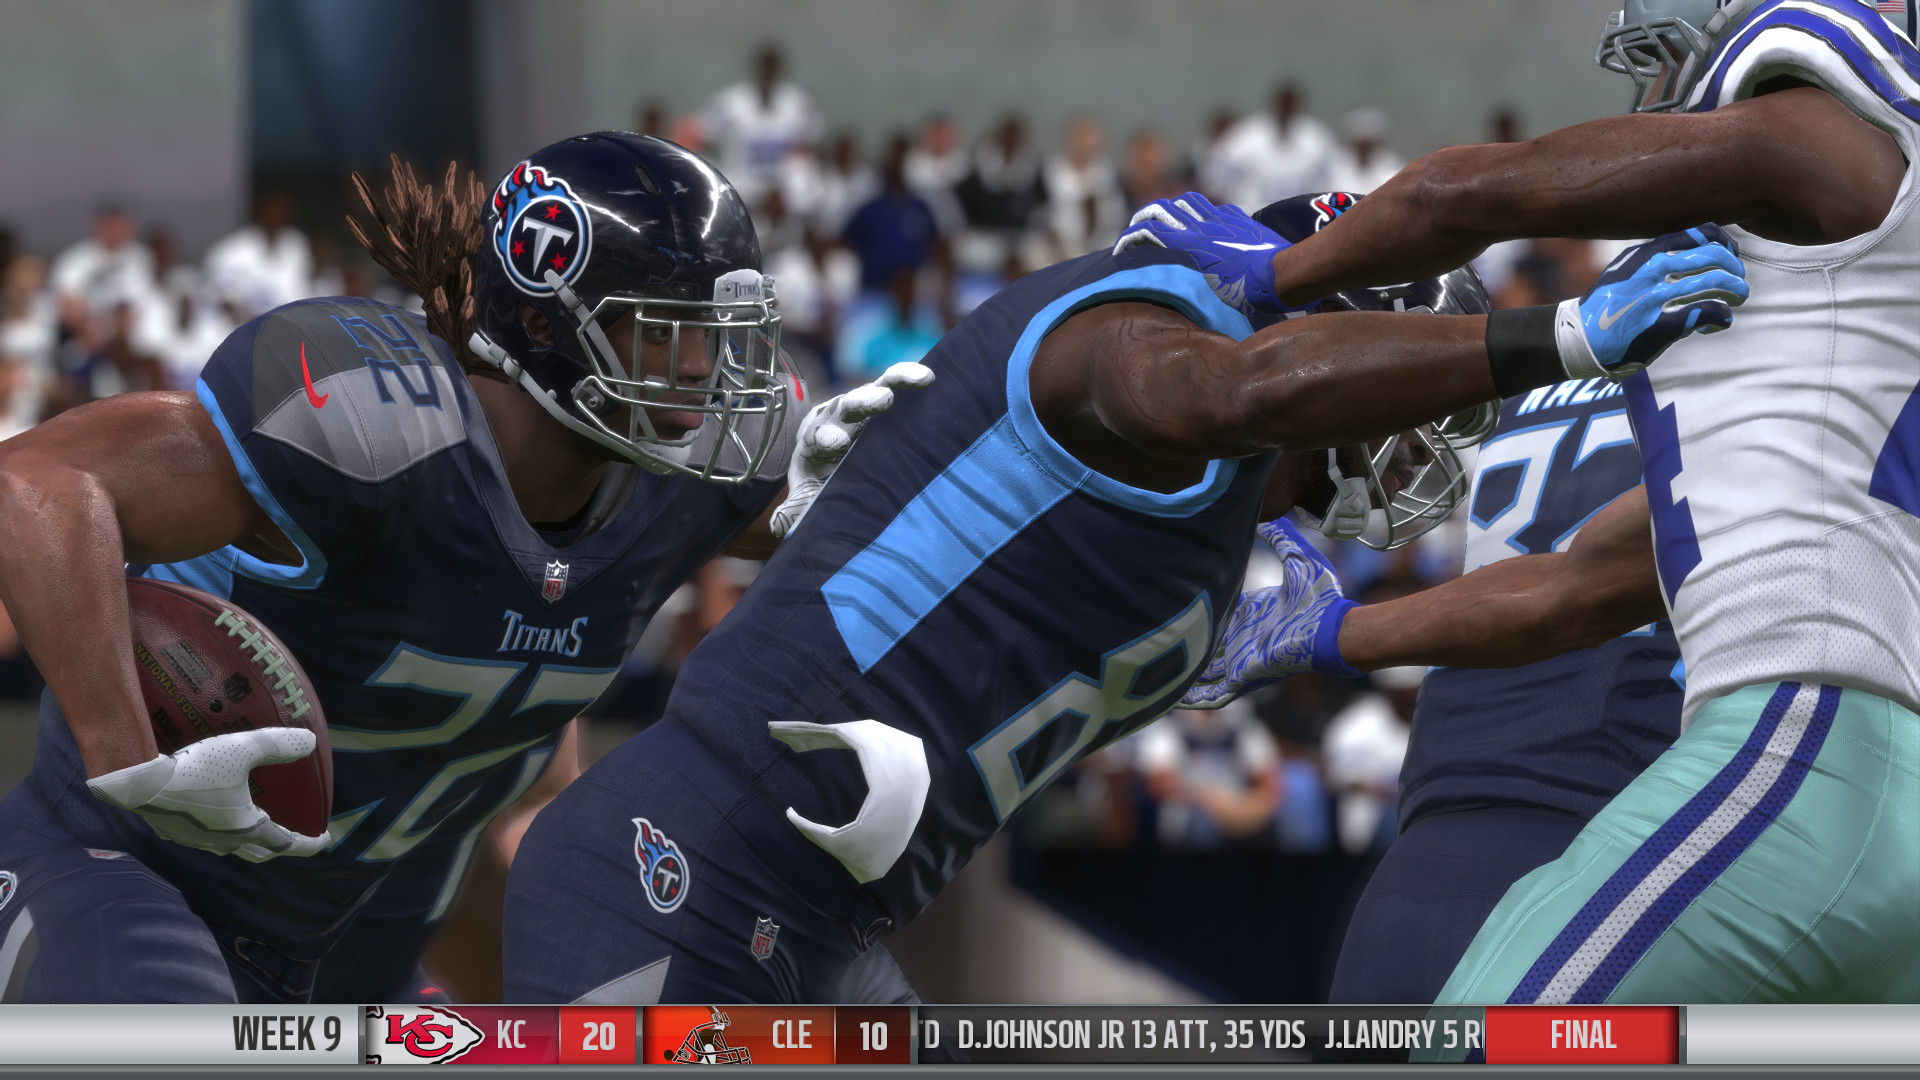 Madden 19 review: The good, the bad and the new from EA Sports  NFL  Sporting News